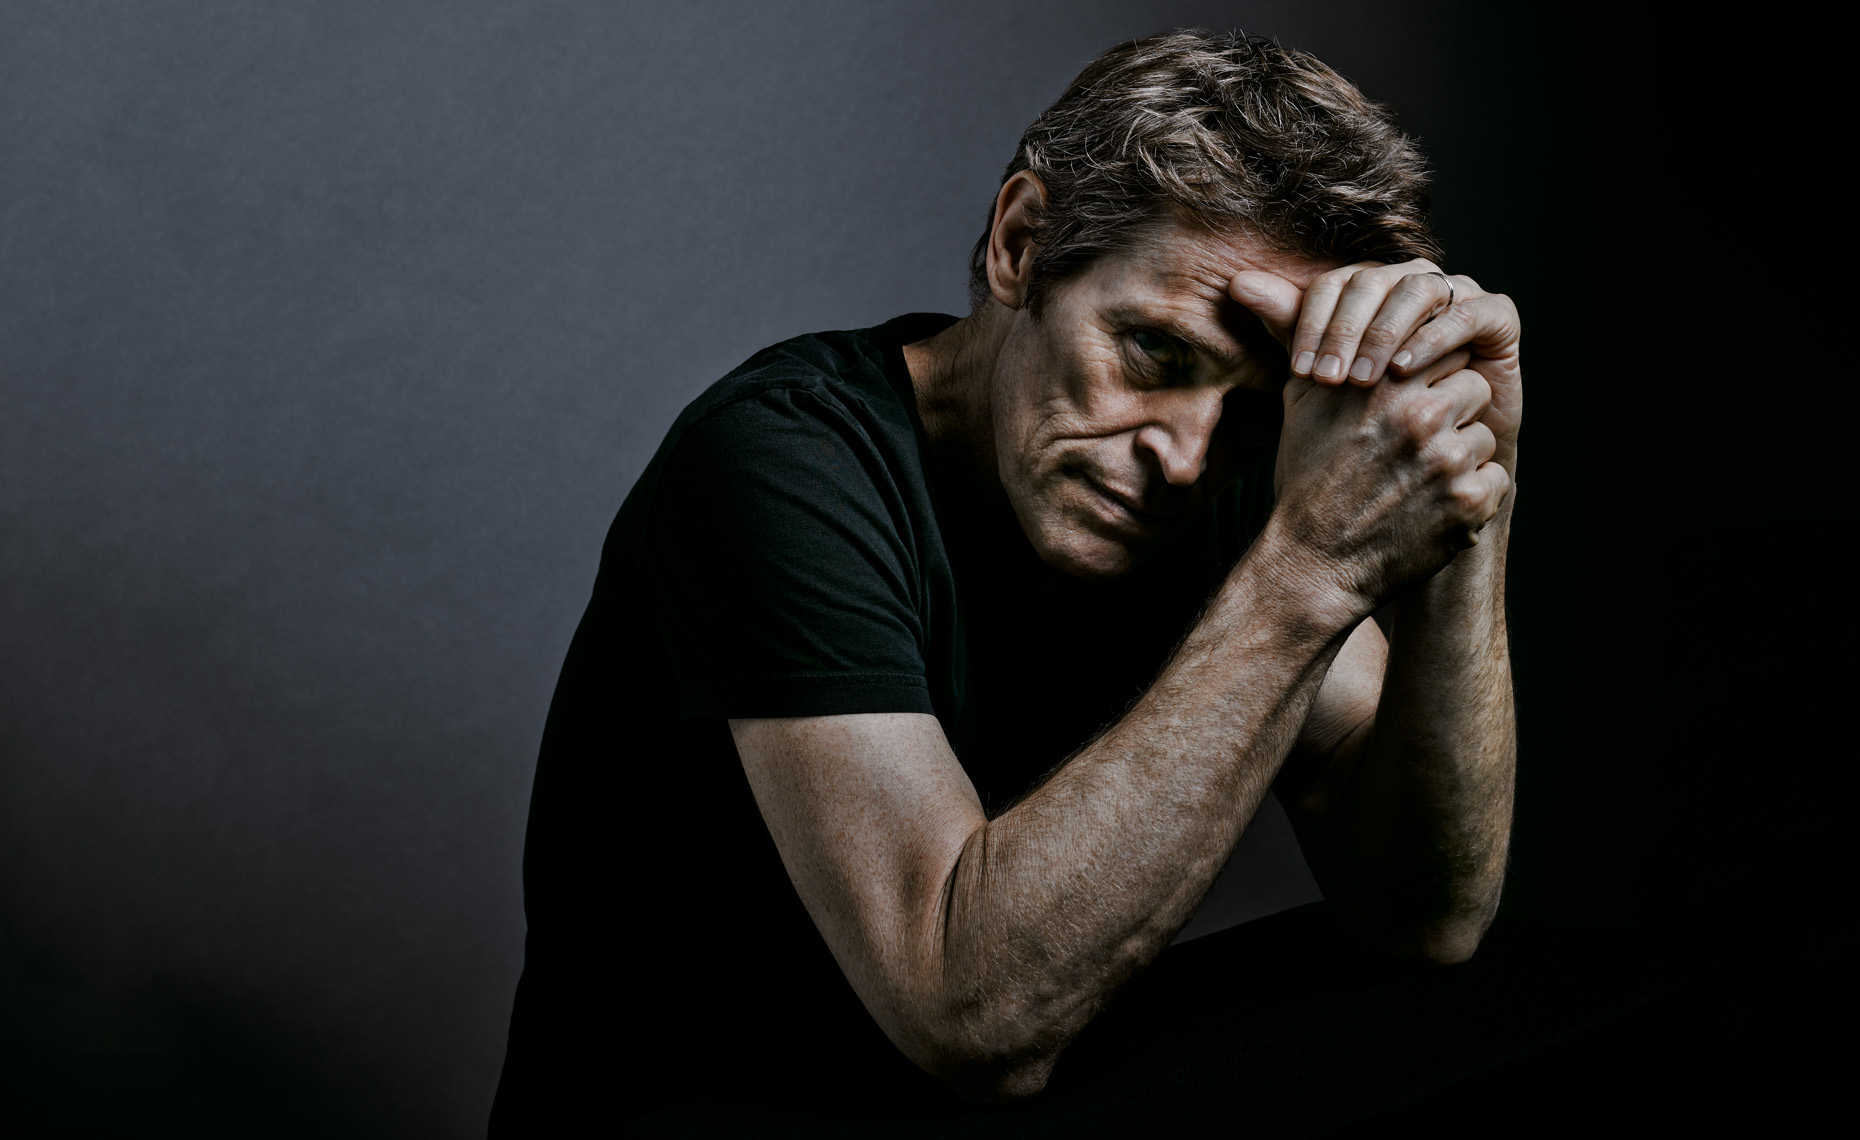 willem_dafoe_wide_NEW